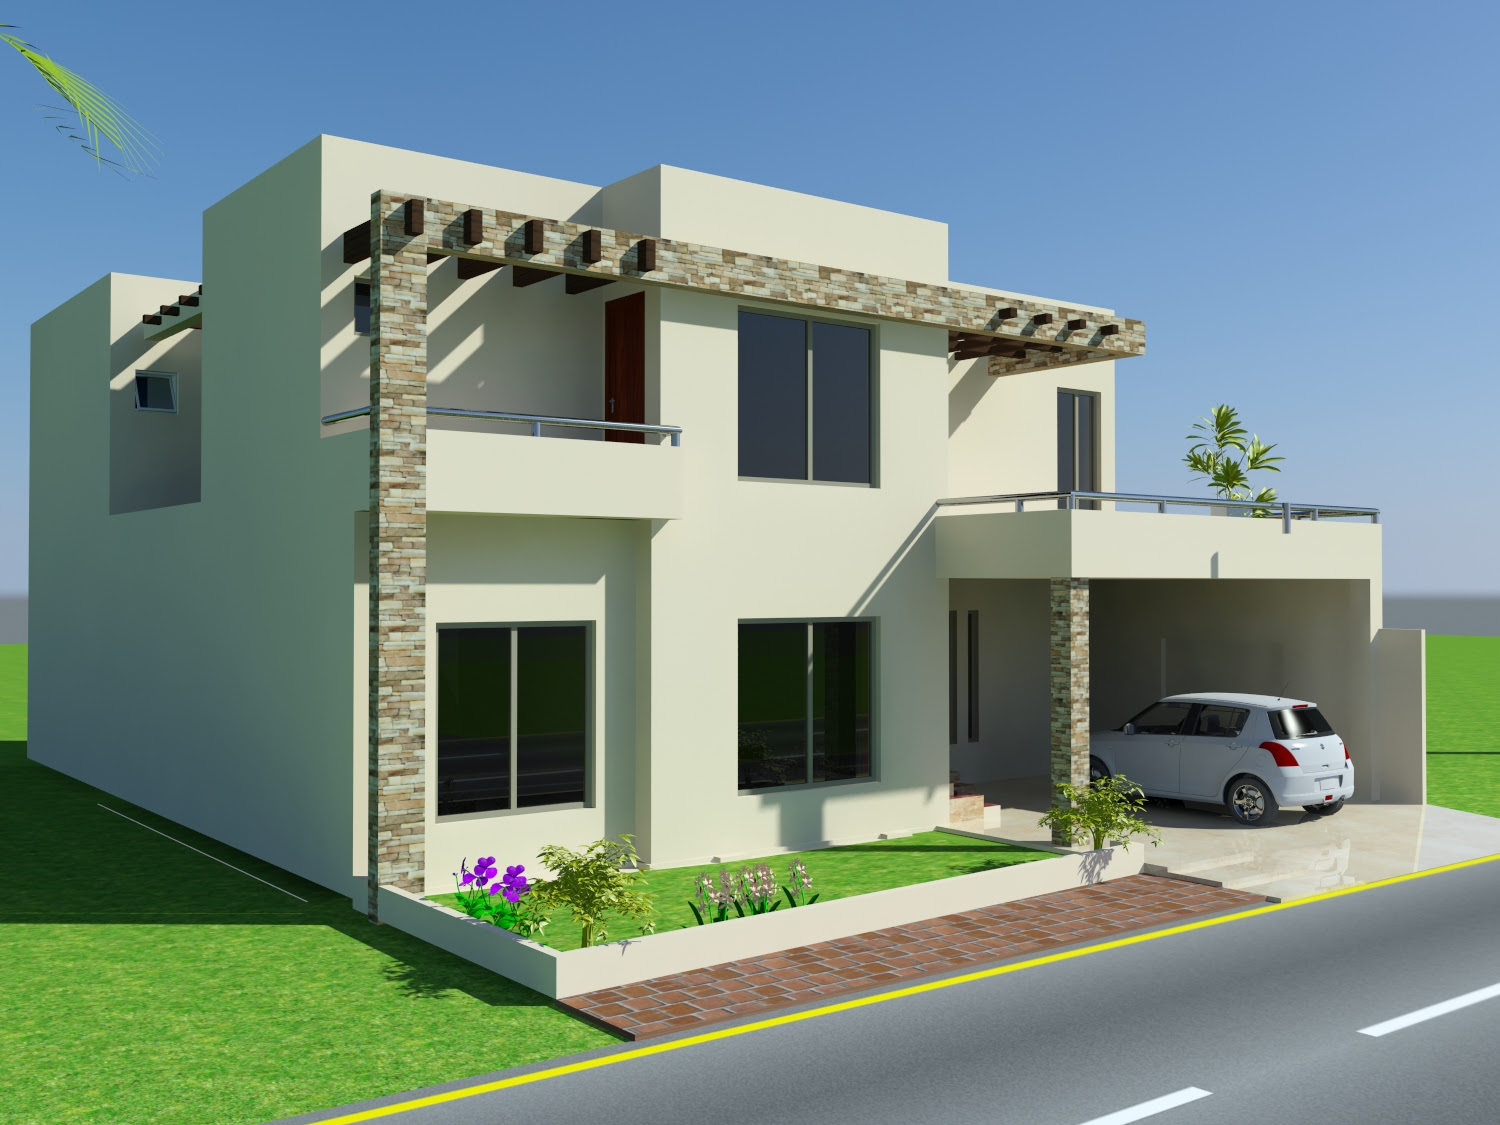 4 marla house front design  Home design and style